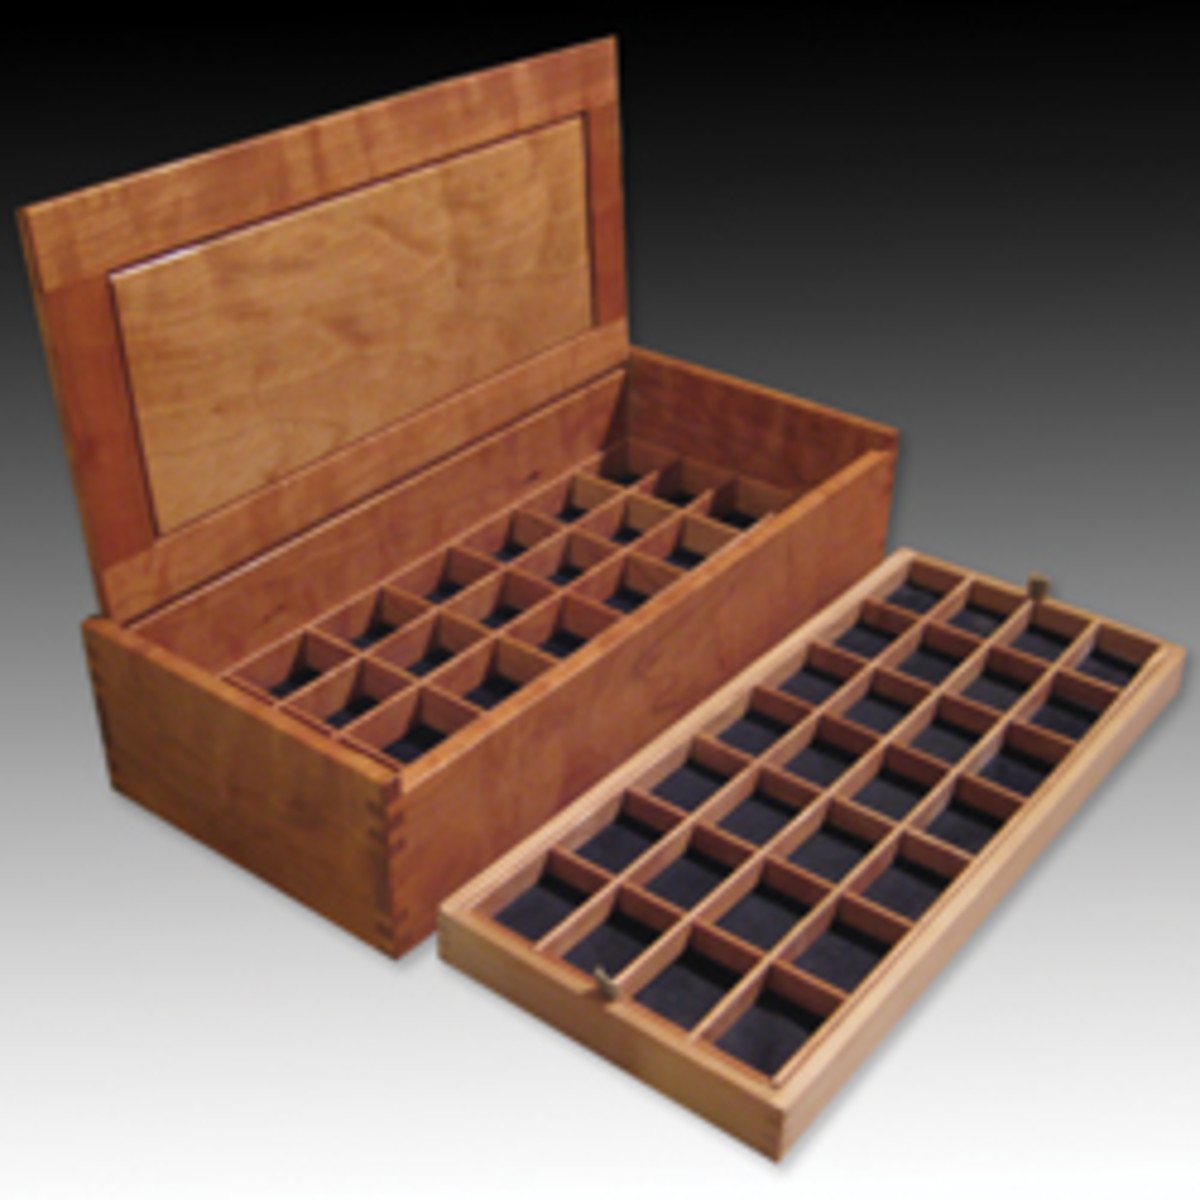 Work By CraftBoston exhibitors includes this jewelry box by David Klenk of Gray, Maine.